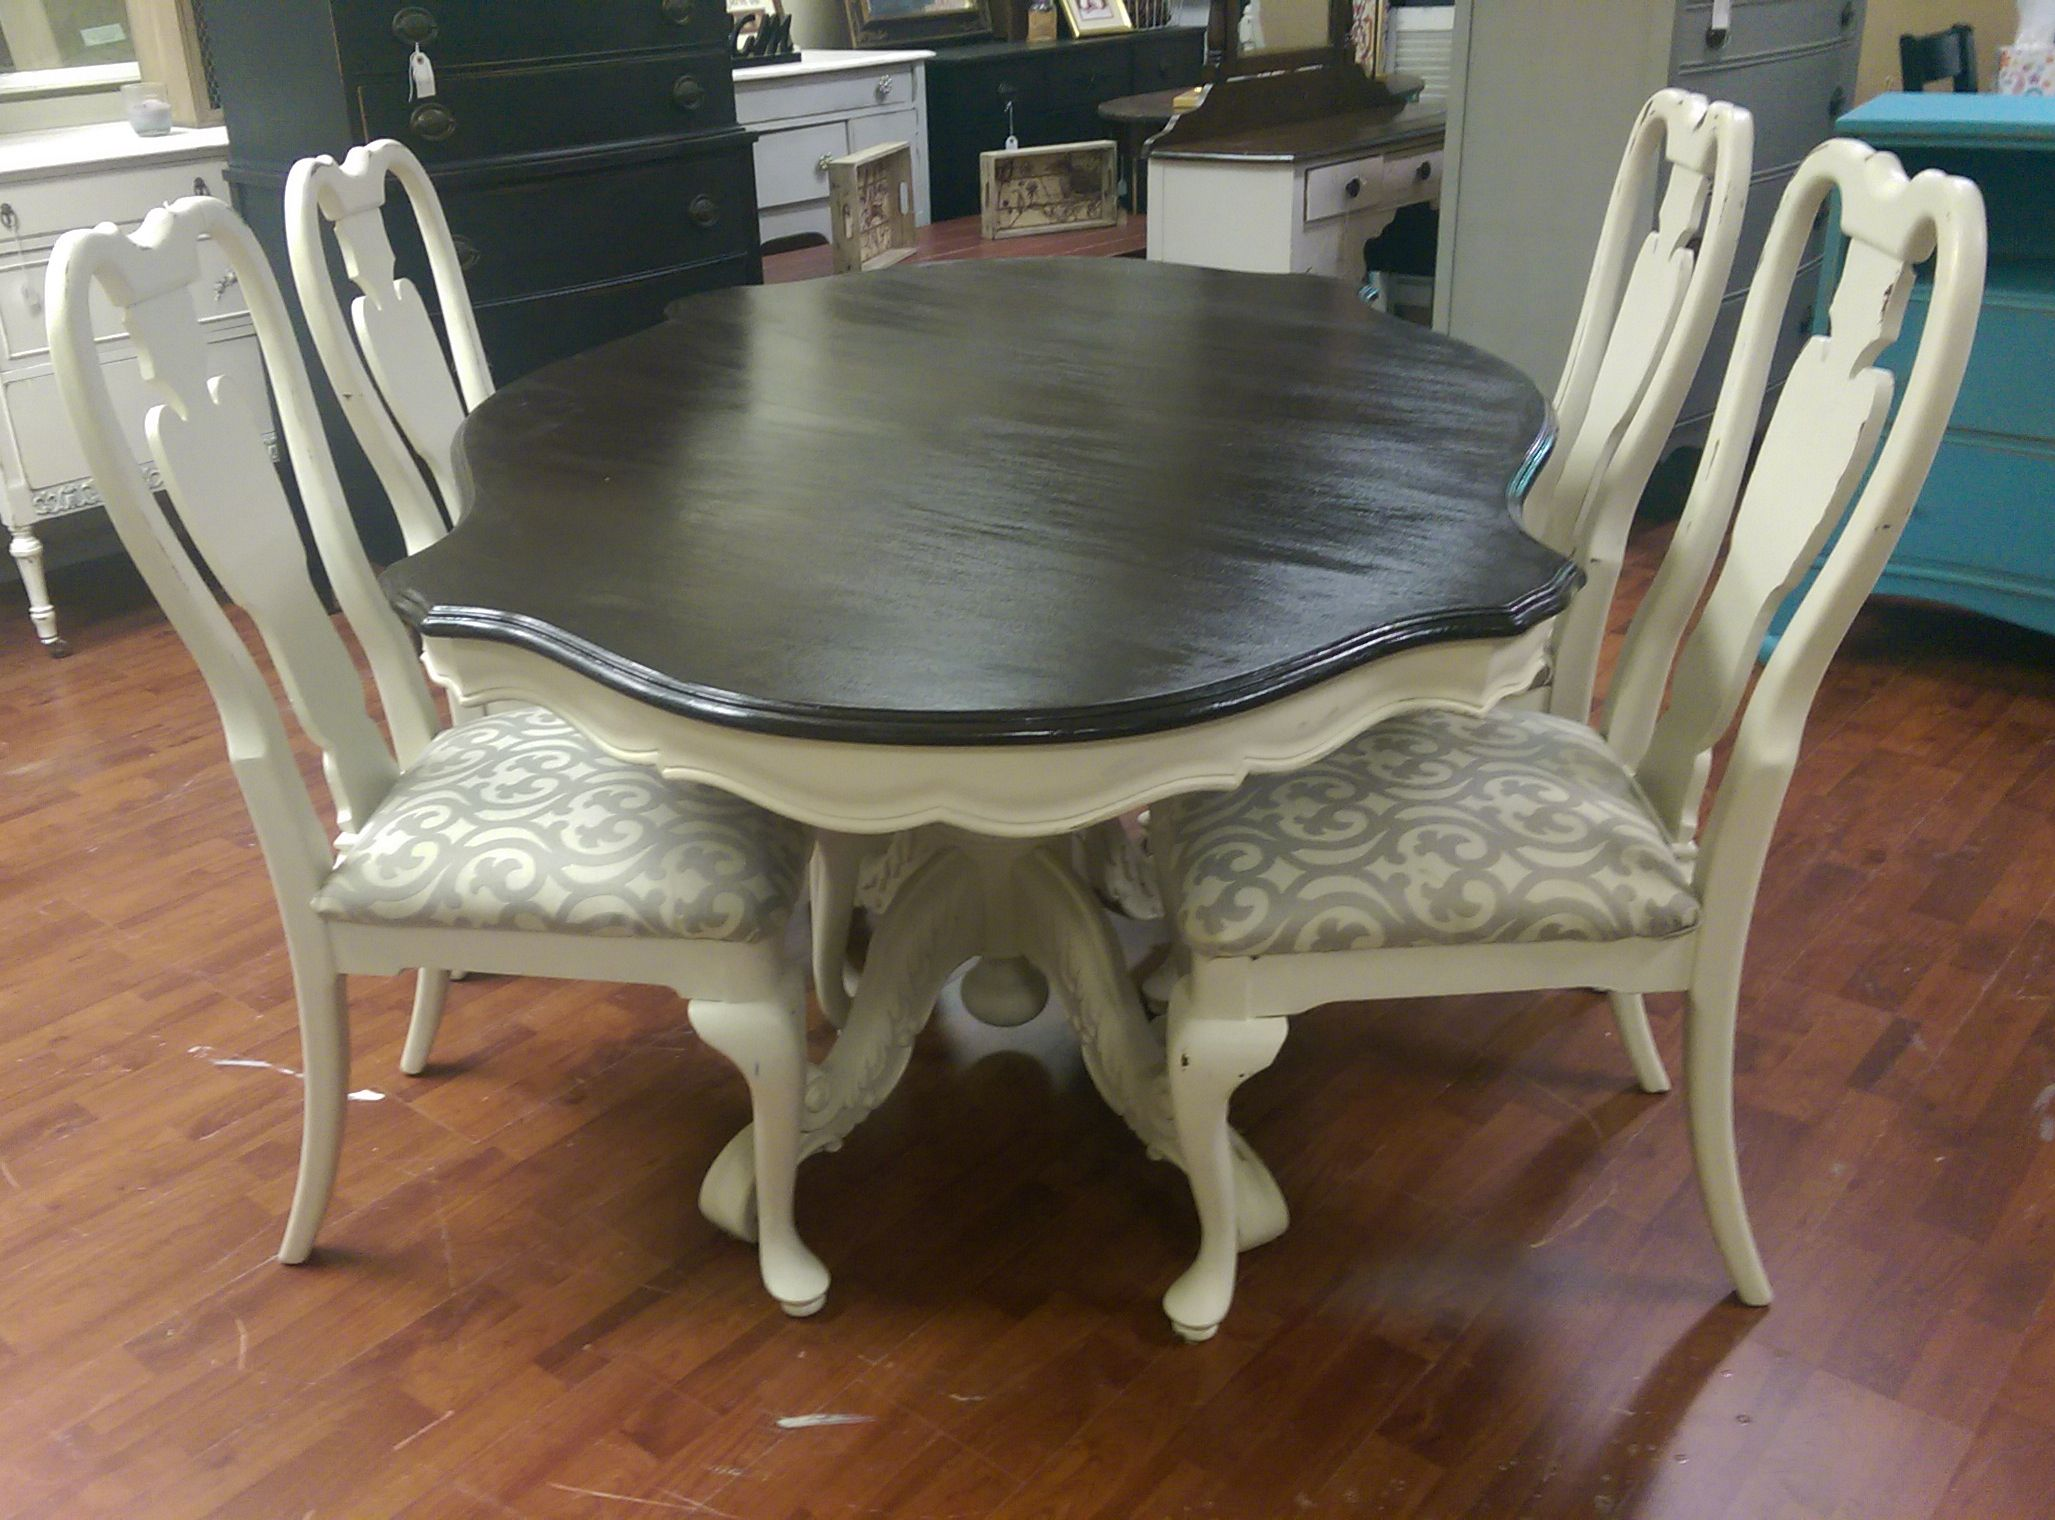 This Is A Gorgeous Dining Room Table It Has A Big Beautiful Pedestal And Four Really Cute Chairs French Country Furniture Shabby Chic Dining French Furniture